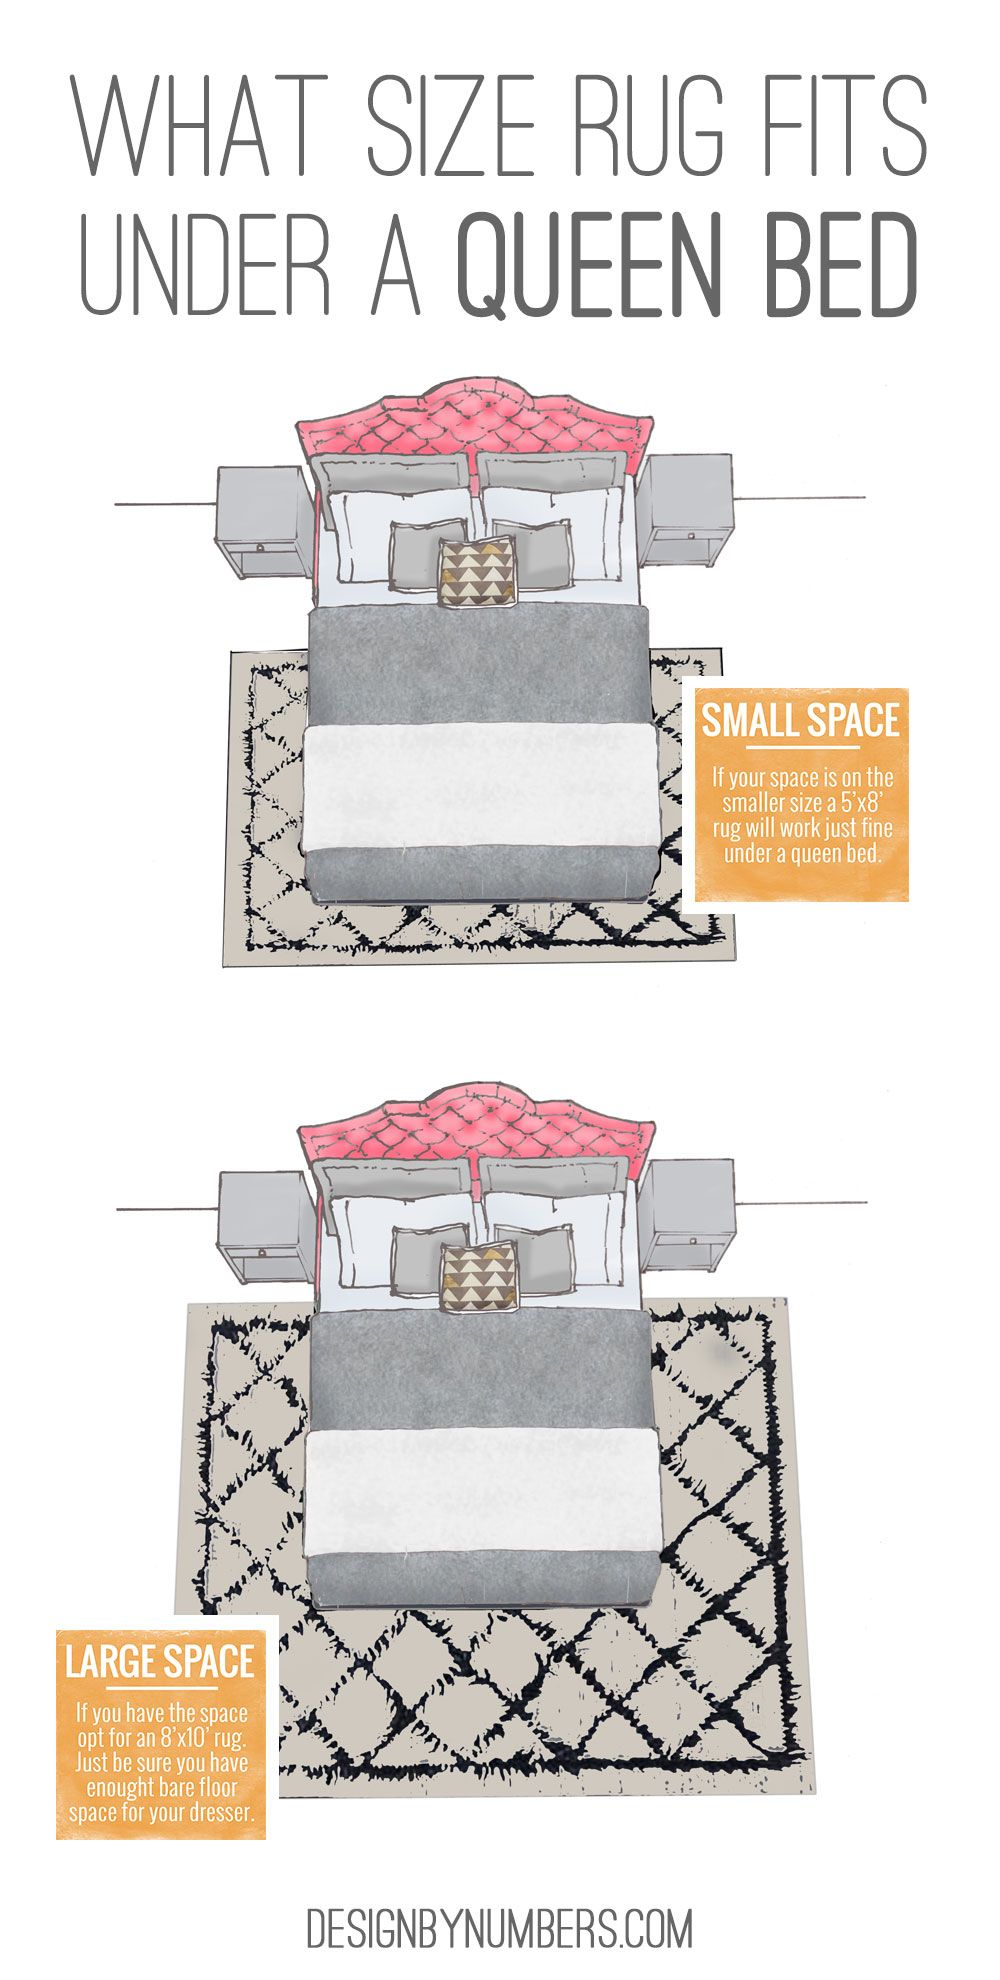 What size rug fits under a queen bed design by numbers home